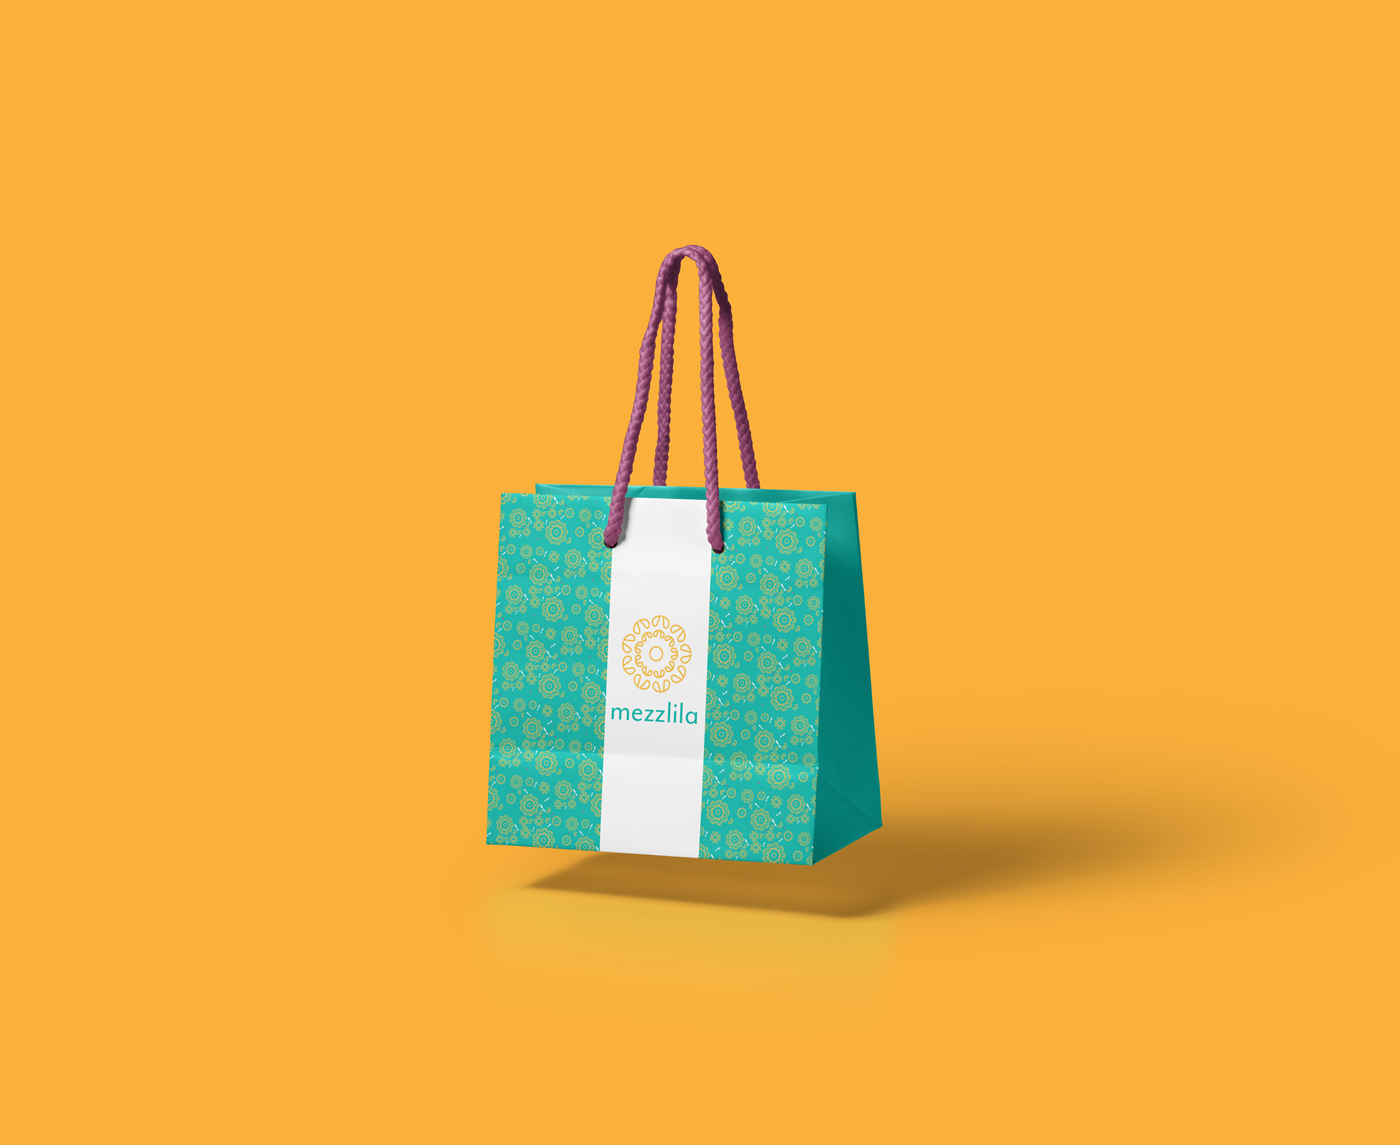 mezzlila shopping bag